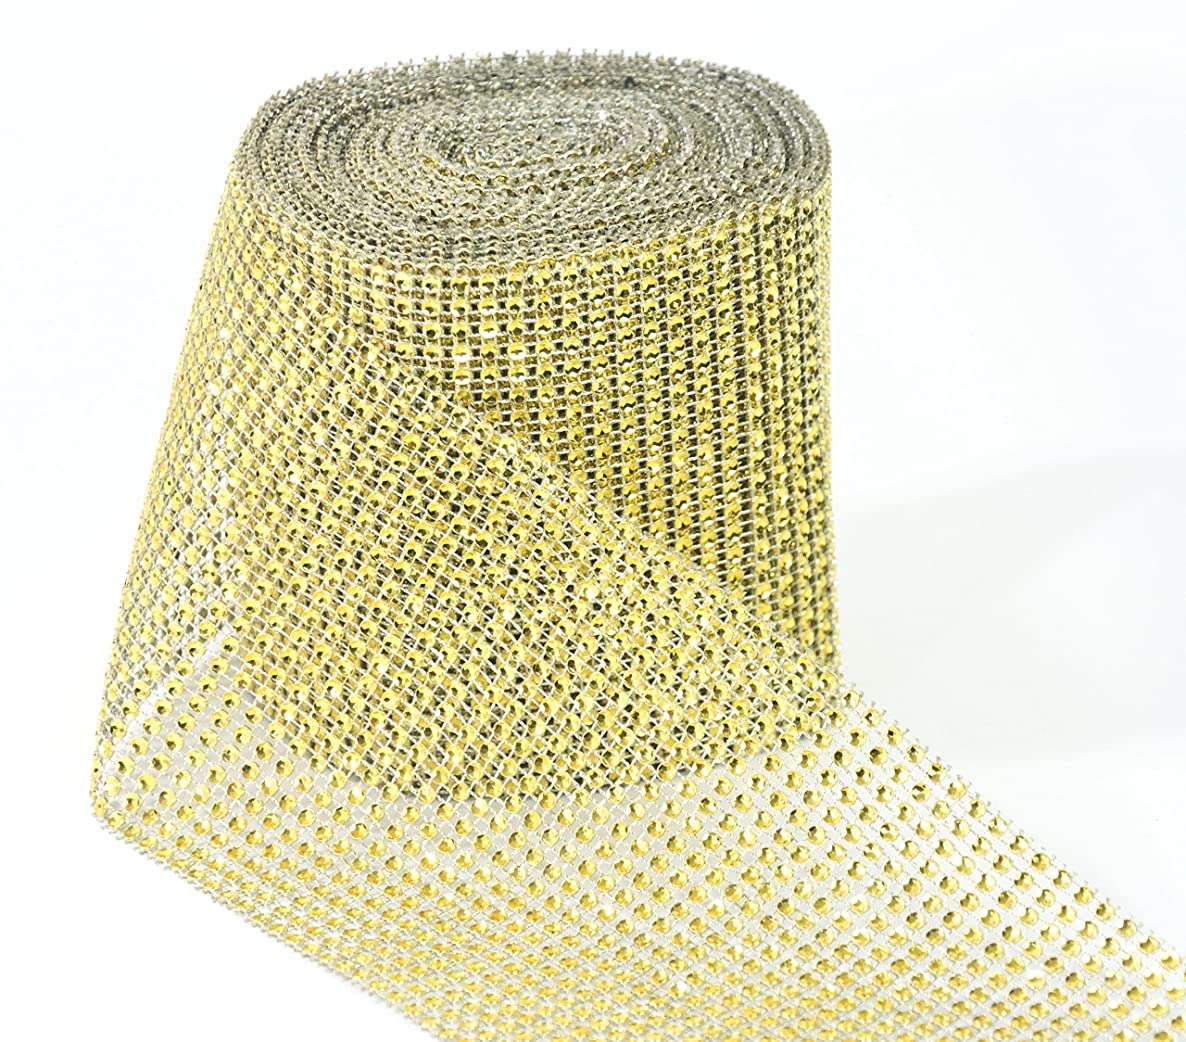 ALL in ONE 10 Yards/30ft Sparkling Faux Rhinestone Ribbon Wrap for DIY Craft Wedding Party Events Decoration (Gold)